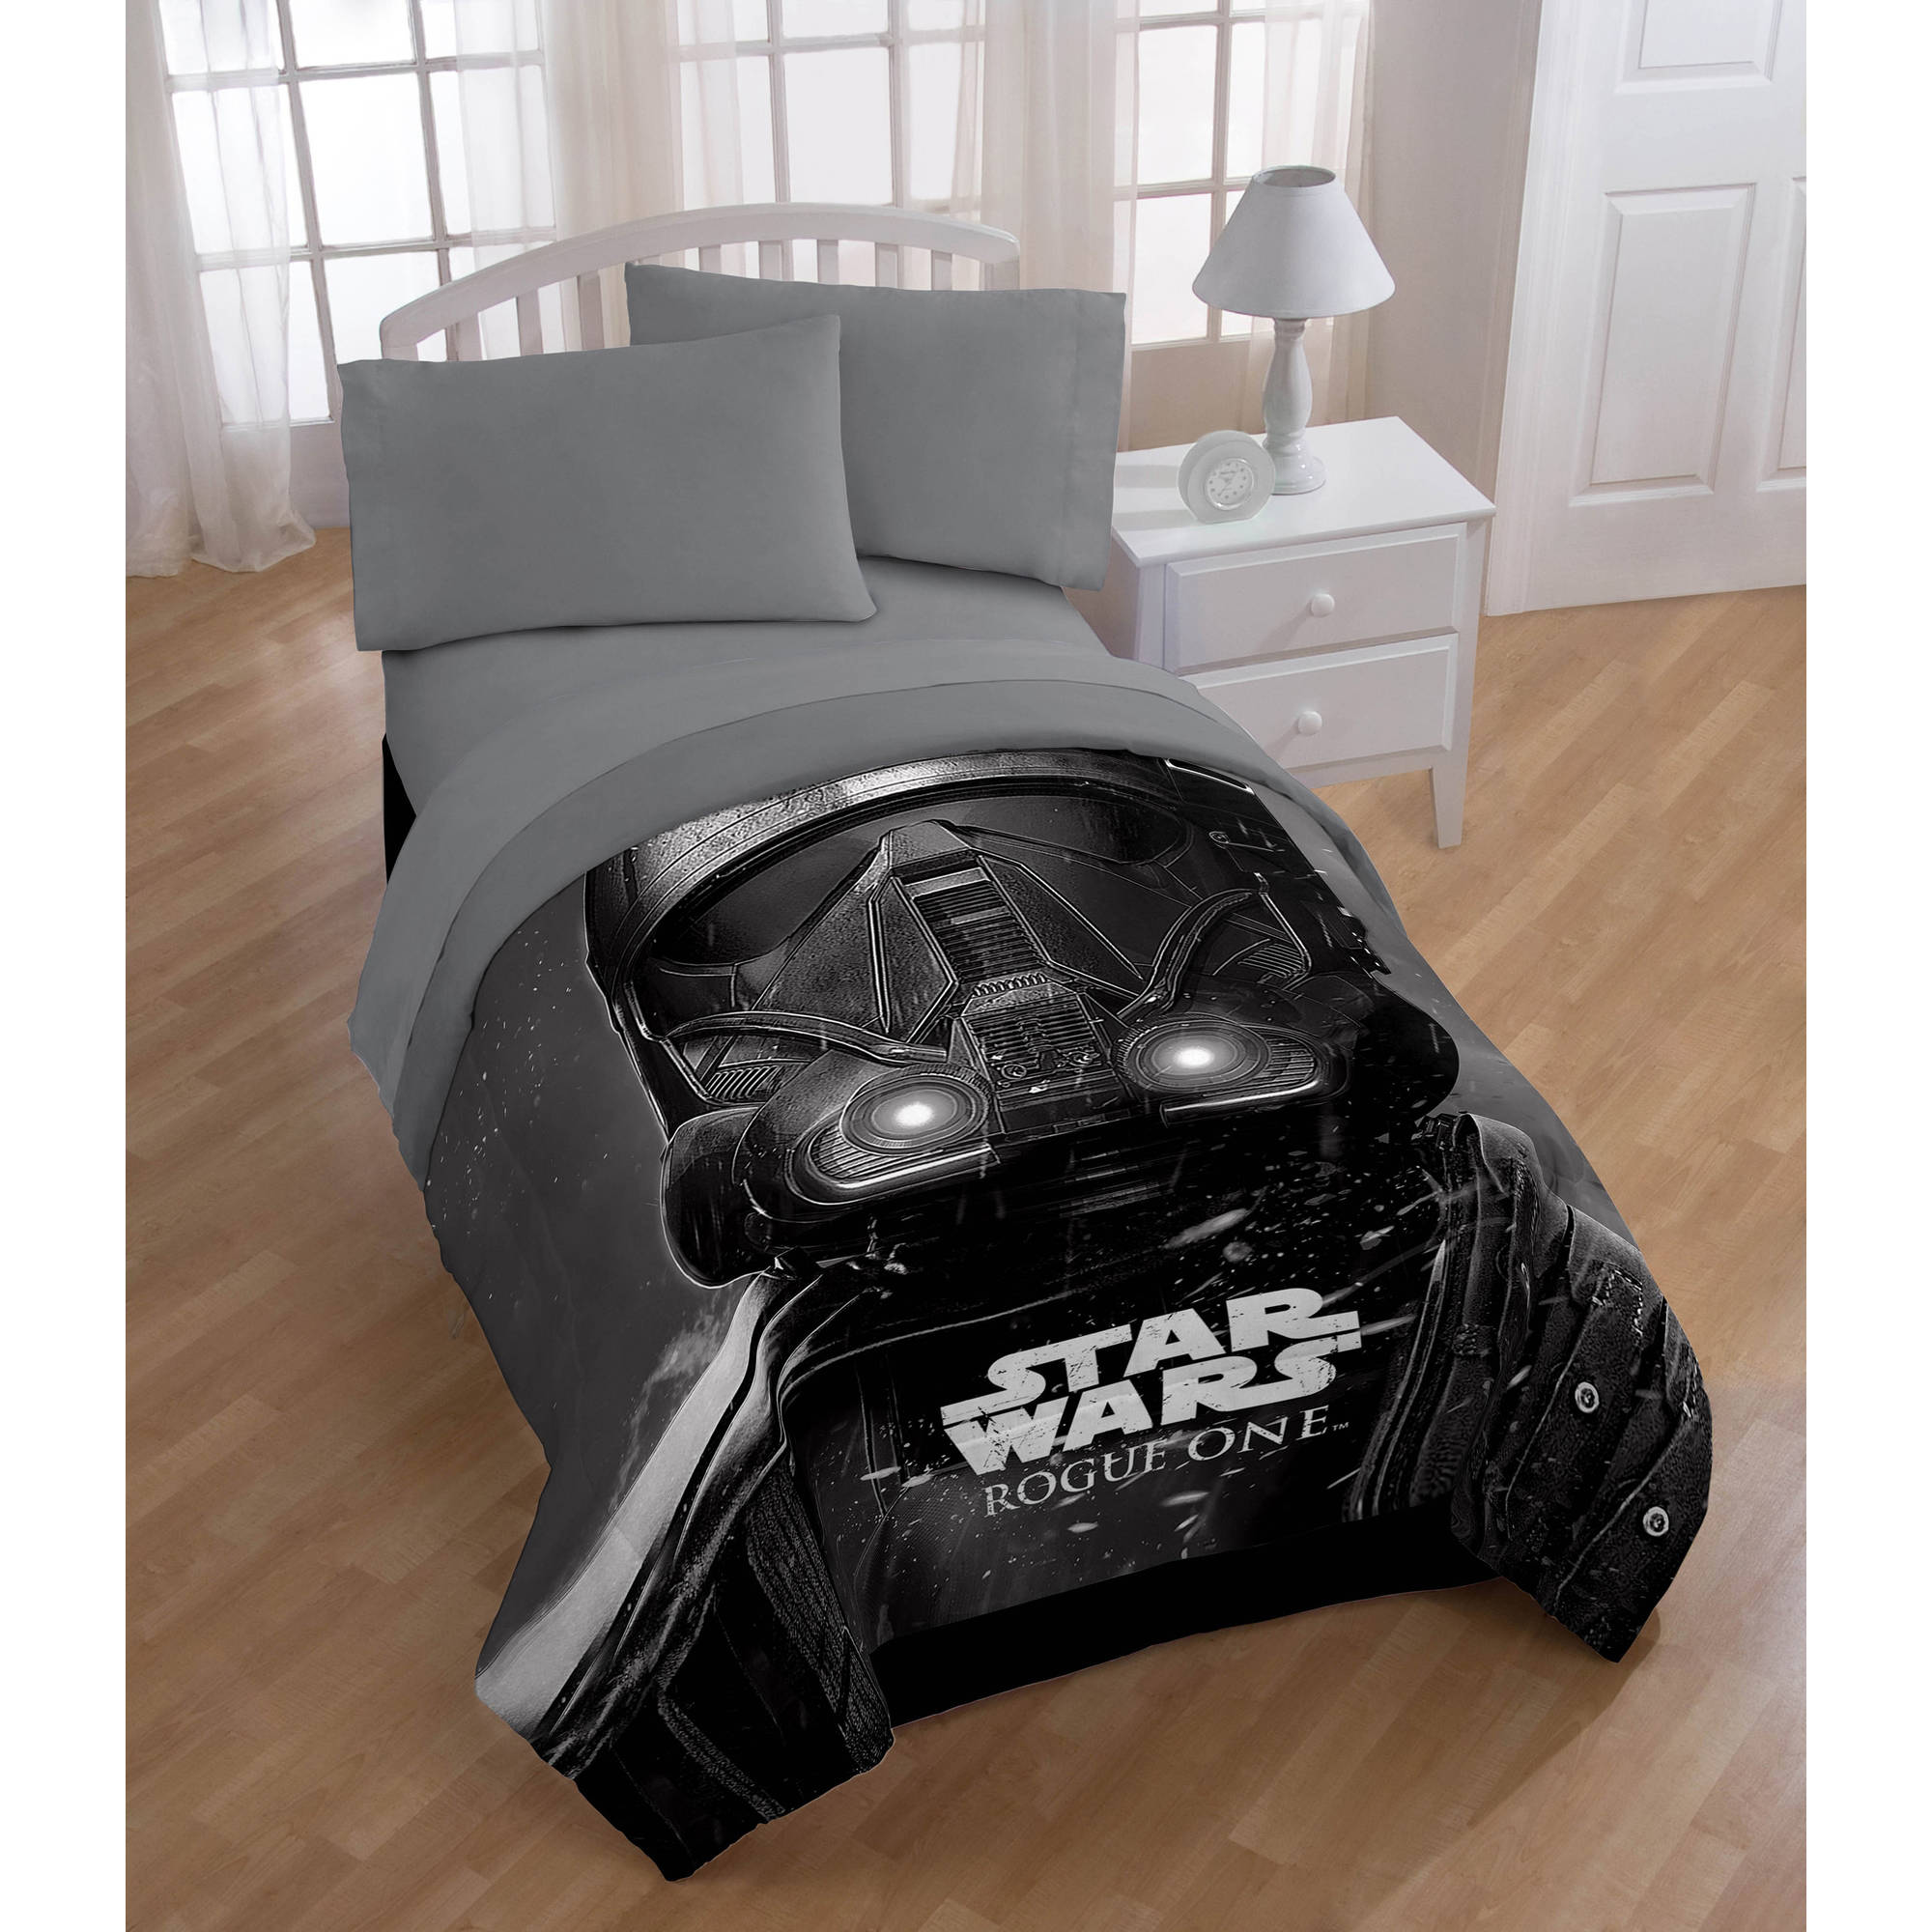 Star Wars Rogue One Blanket